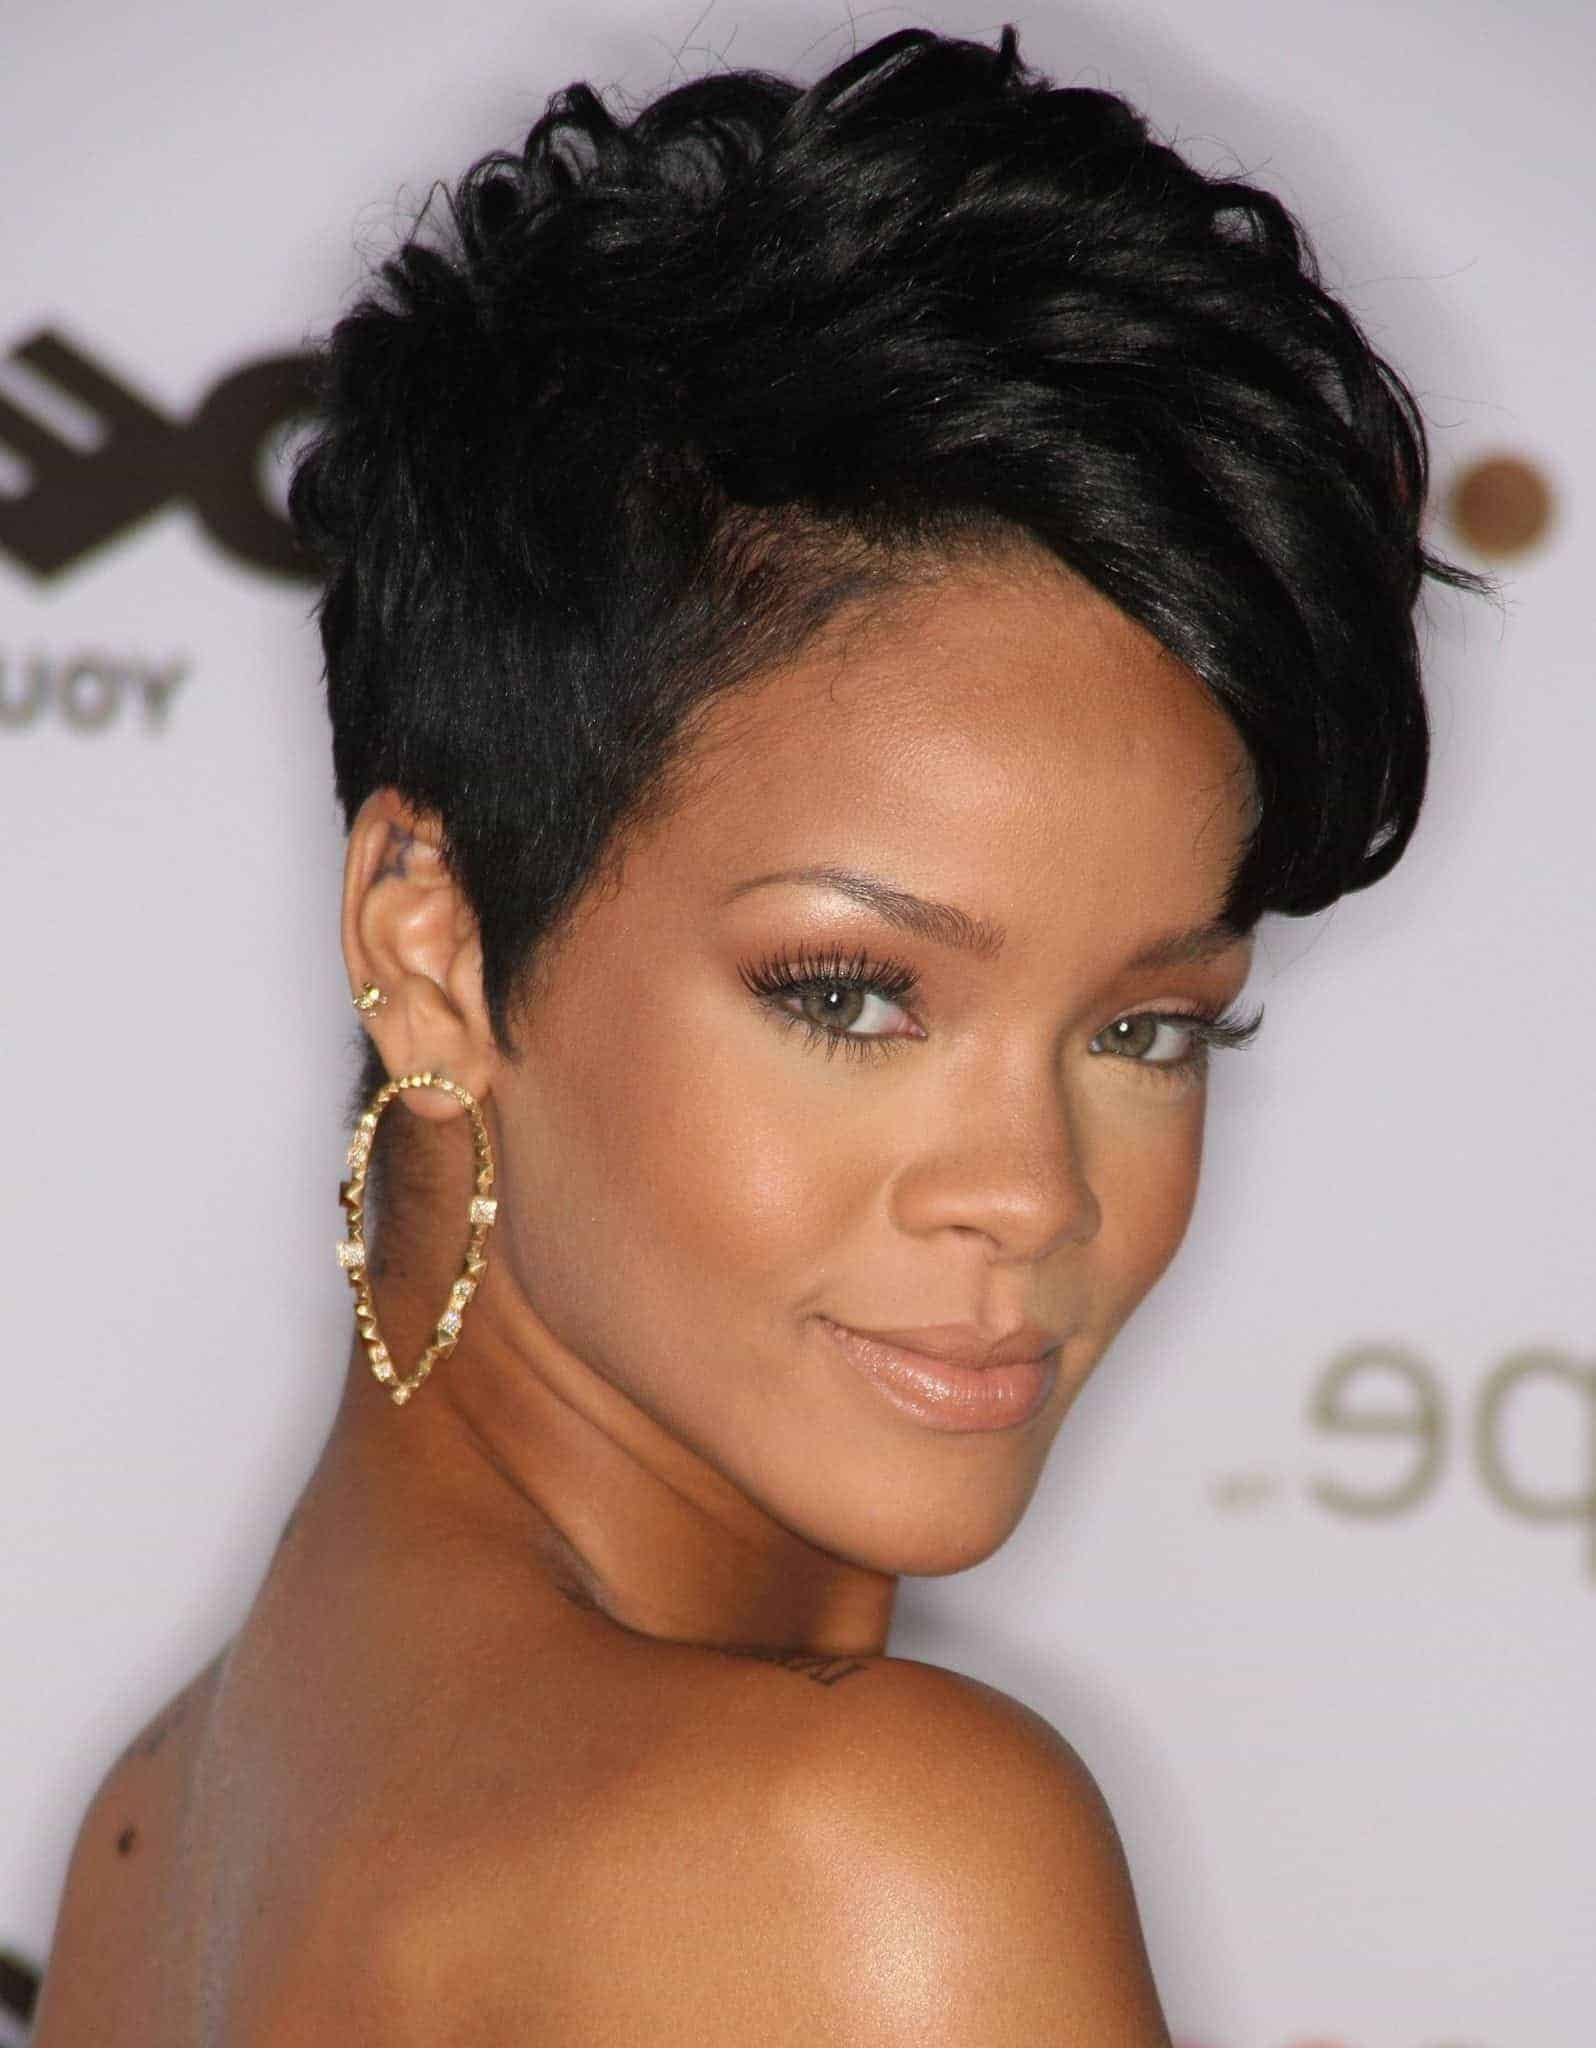 Short natural hairstyles for black women 2018 - Womenstyle.com